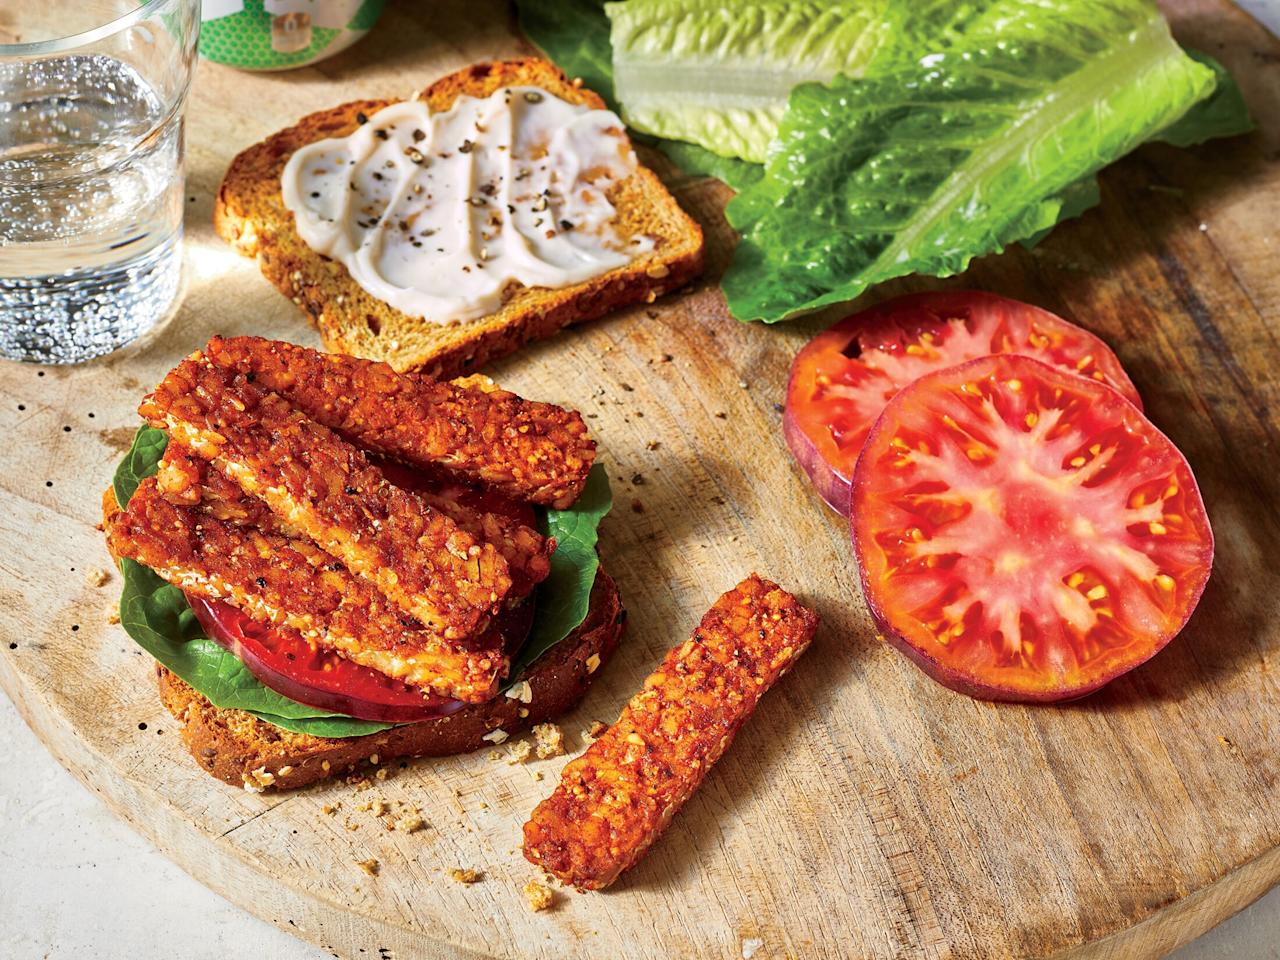 """<p>A <a href=""""https://www.cookinglight.com/news/whole-foods-viral-vegan-blt-ttla"""" target=""""_blank"""">vegan BLT from Whole Foods</a> went viral earlier this year, and we replicated <a href=""""https://www.cookinglight.com/food/vegetarian/i-made-the-viral-whole-foods-ttla-vegan-blt"""" target=""""_blank"""">the recipe</a> with shortcuts. This house-smoked version allows for a truly bacon-like flavor — you'll never have a BLT quite like it.</p> <p> <a href=""""https://www.cookinglight.com/recipes/smoked-tempeh-blt"""">View Recipe: Vegan Smoked Tempeh BLT</a></p>"""